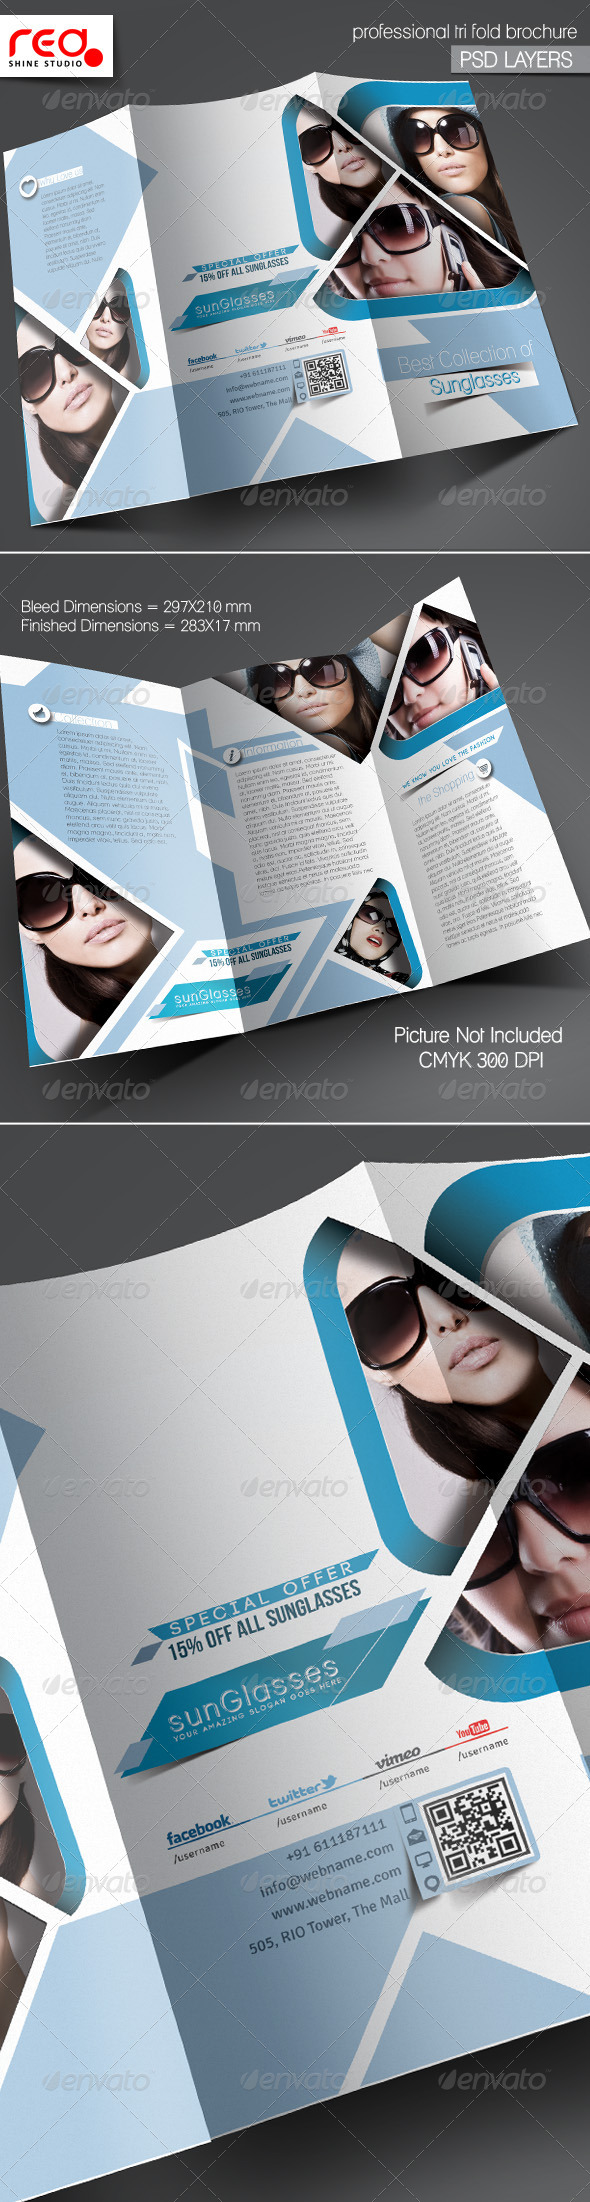 GraphicRiver SunGlasses Fashion Store Trifold Brochure Template 5442105